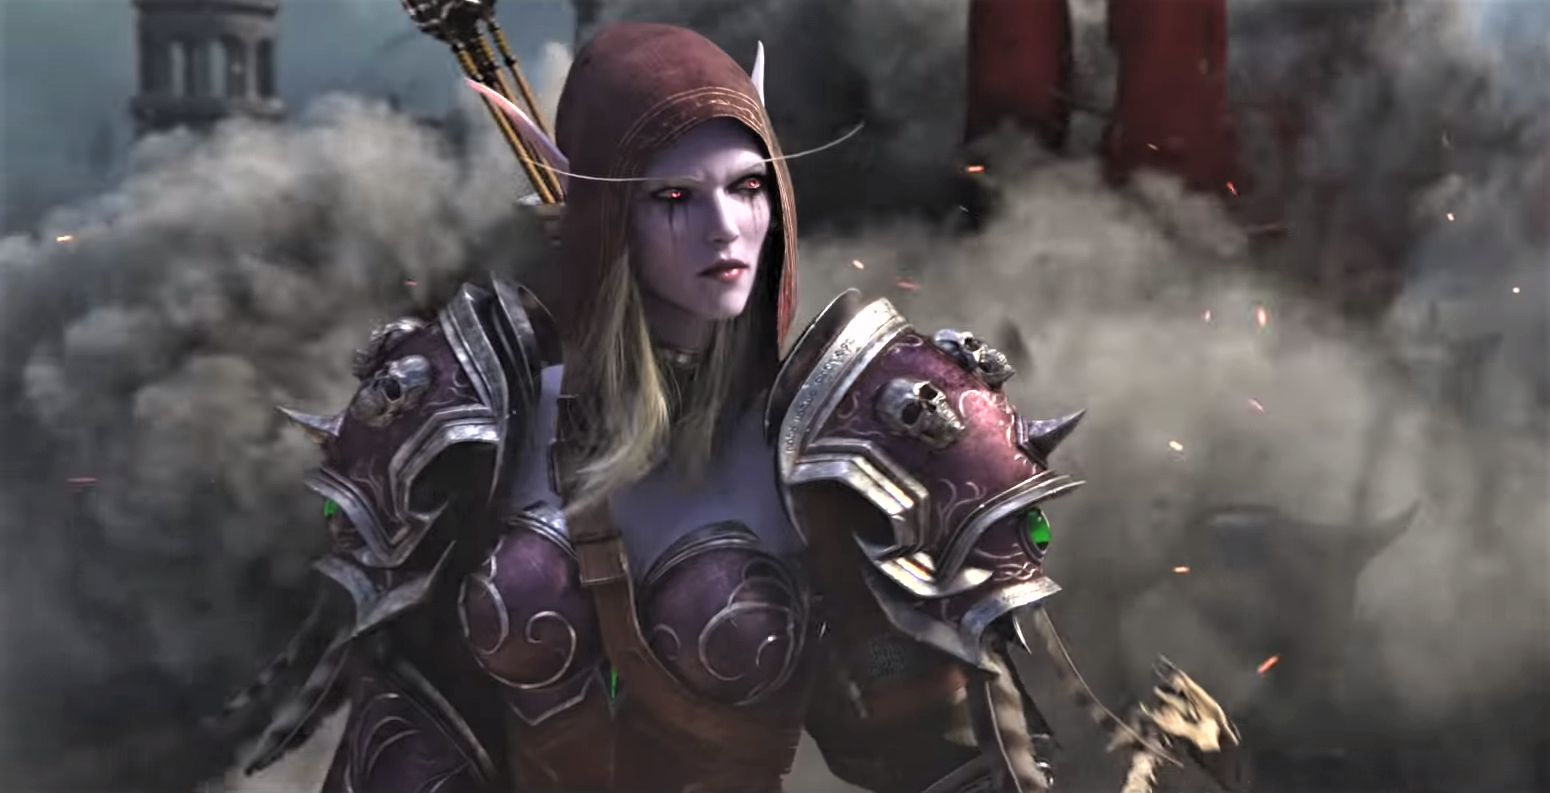 Cinematic still from World of Warcraft: Battle for Azeroth